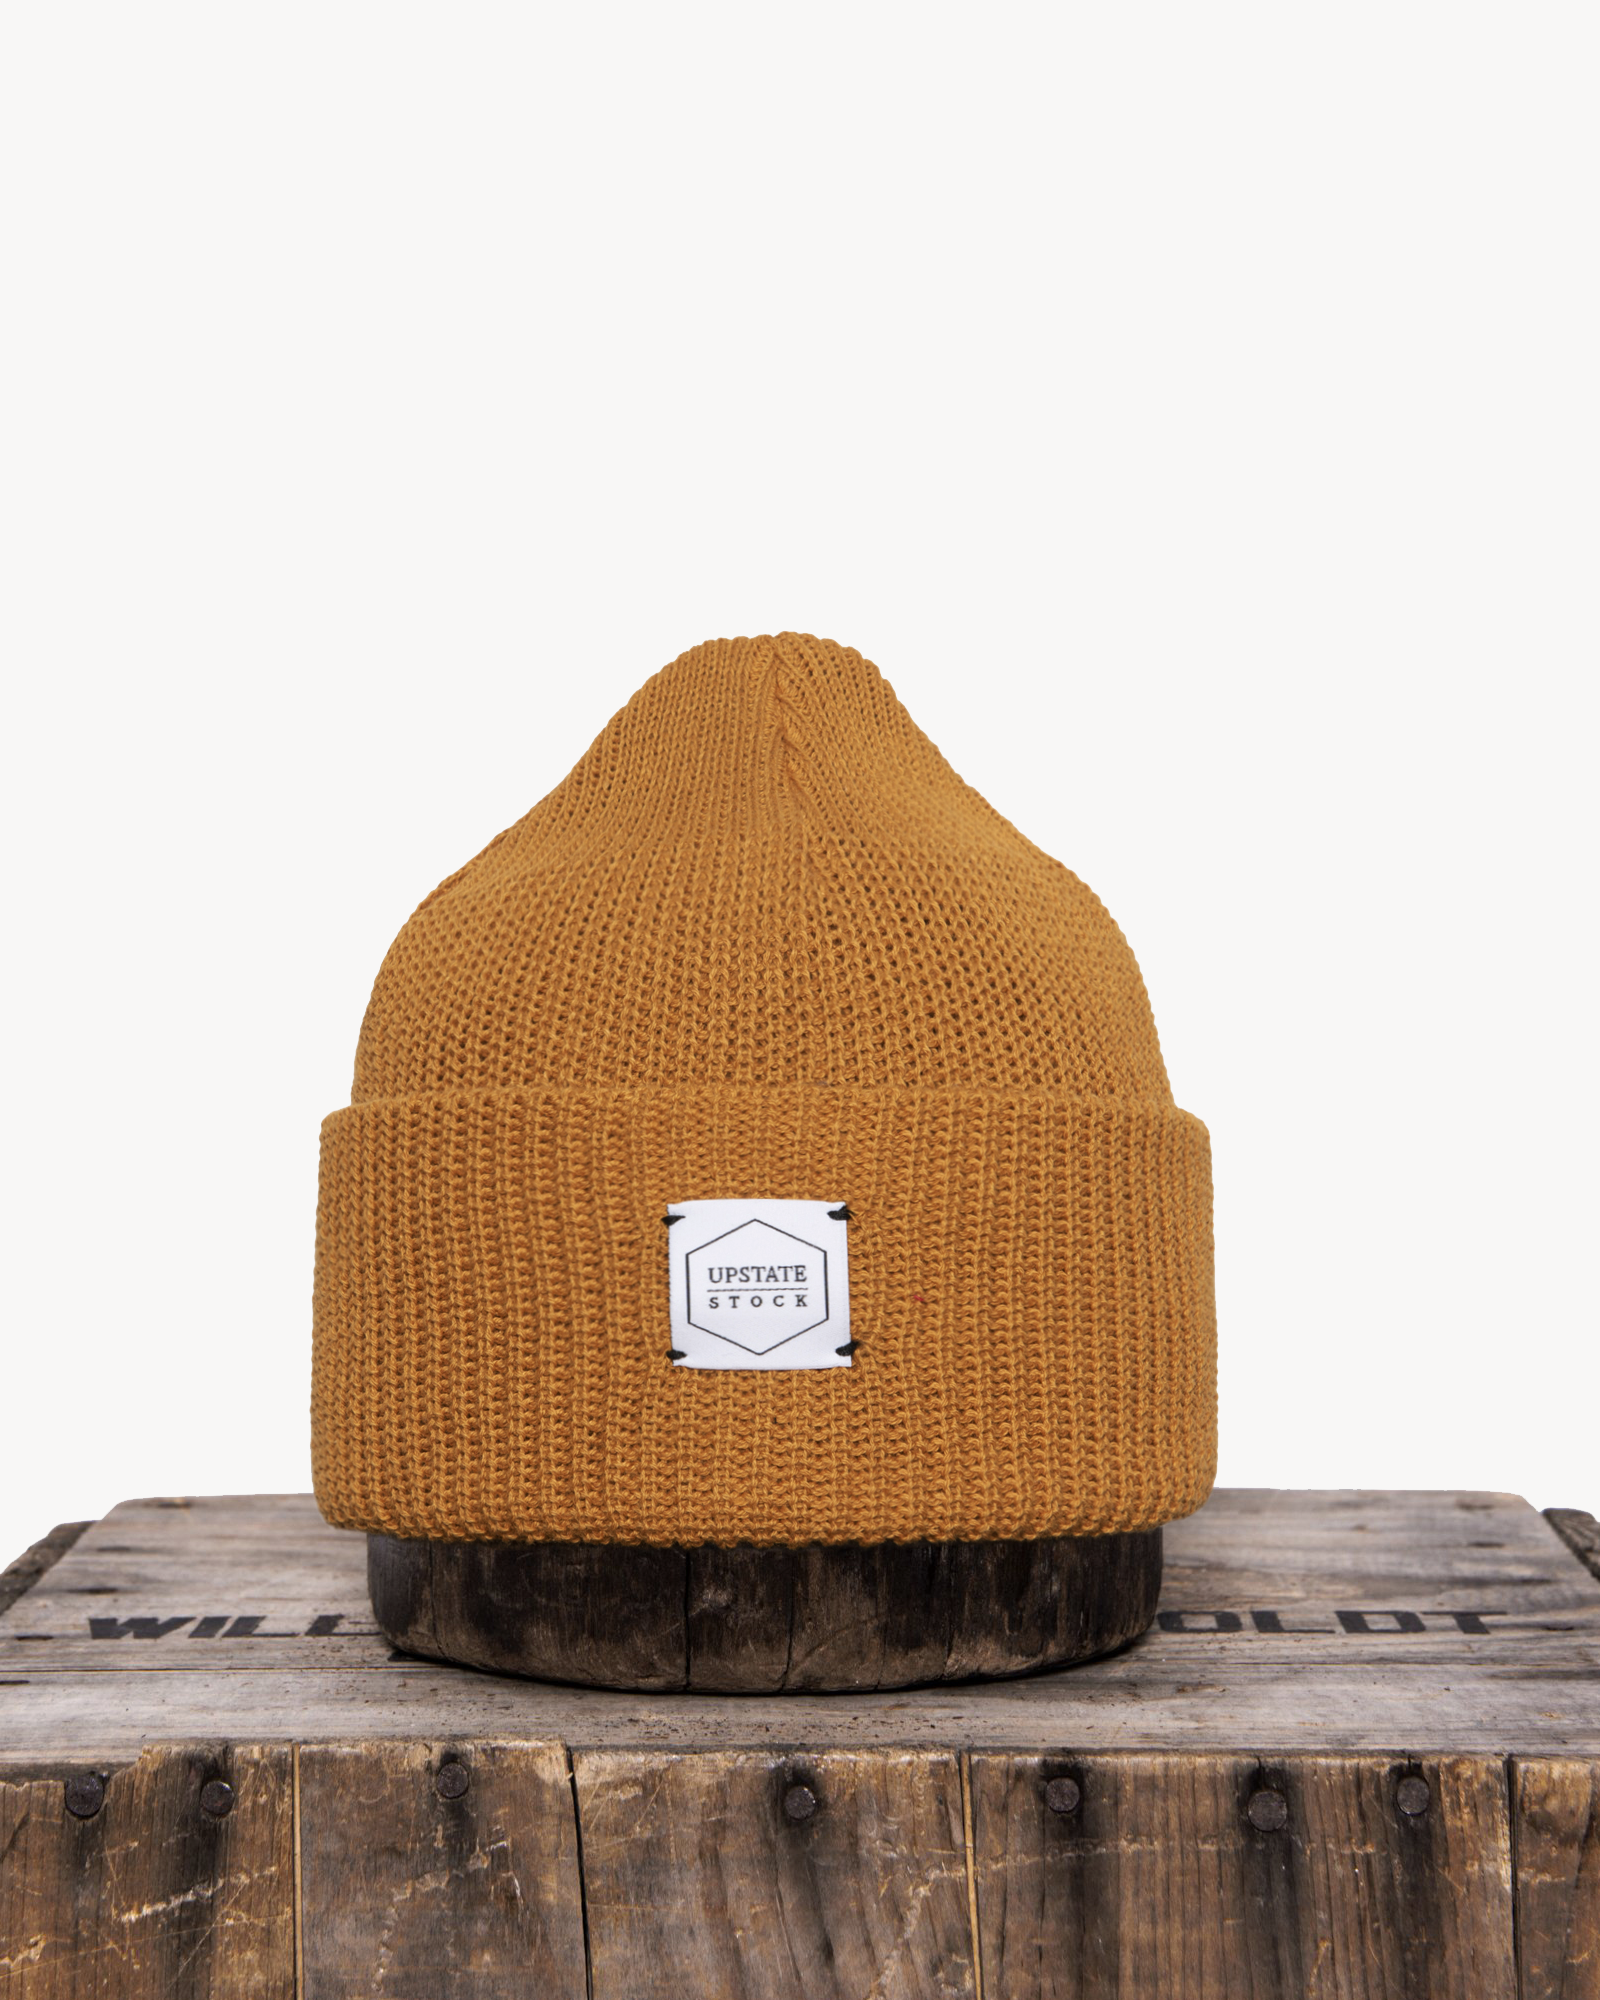 Upstate Stock's Eco-Cotton Watchcap